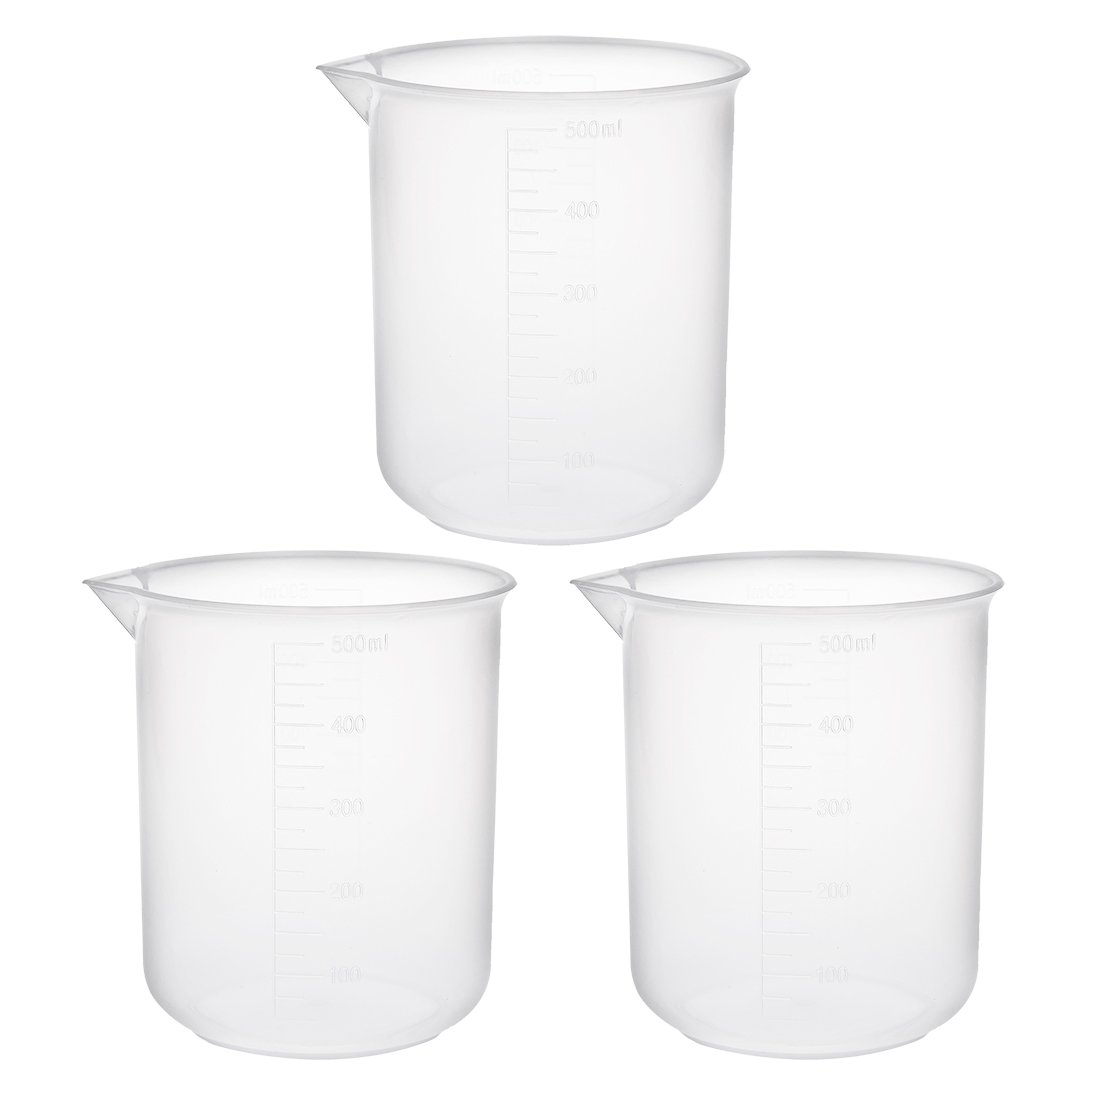 sourcingmap 3pcs Measuring Cup Labs PP Graduated Beakers 100ml a18031400ux0059